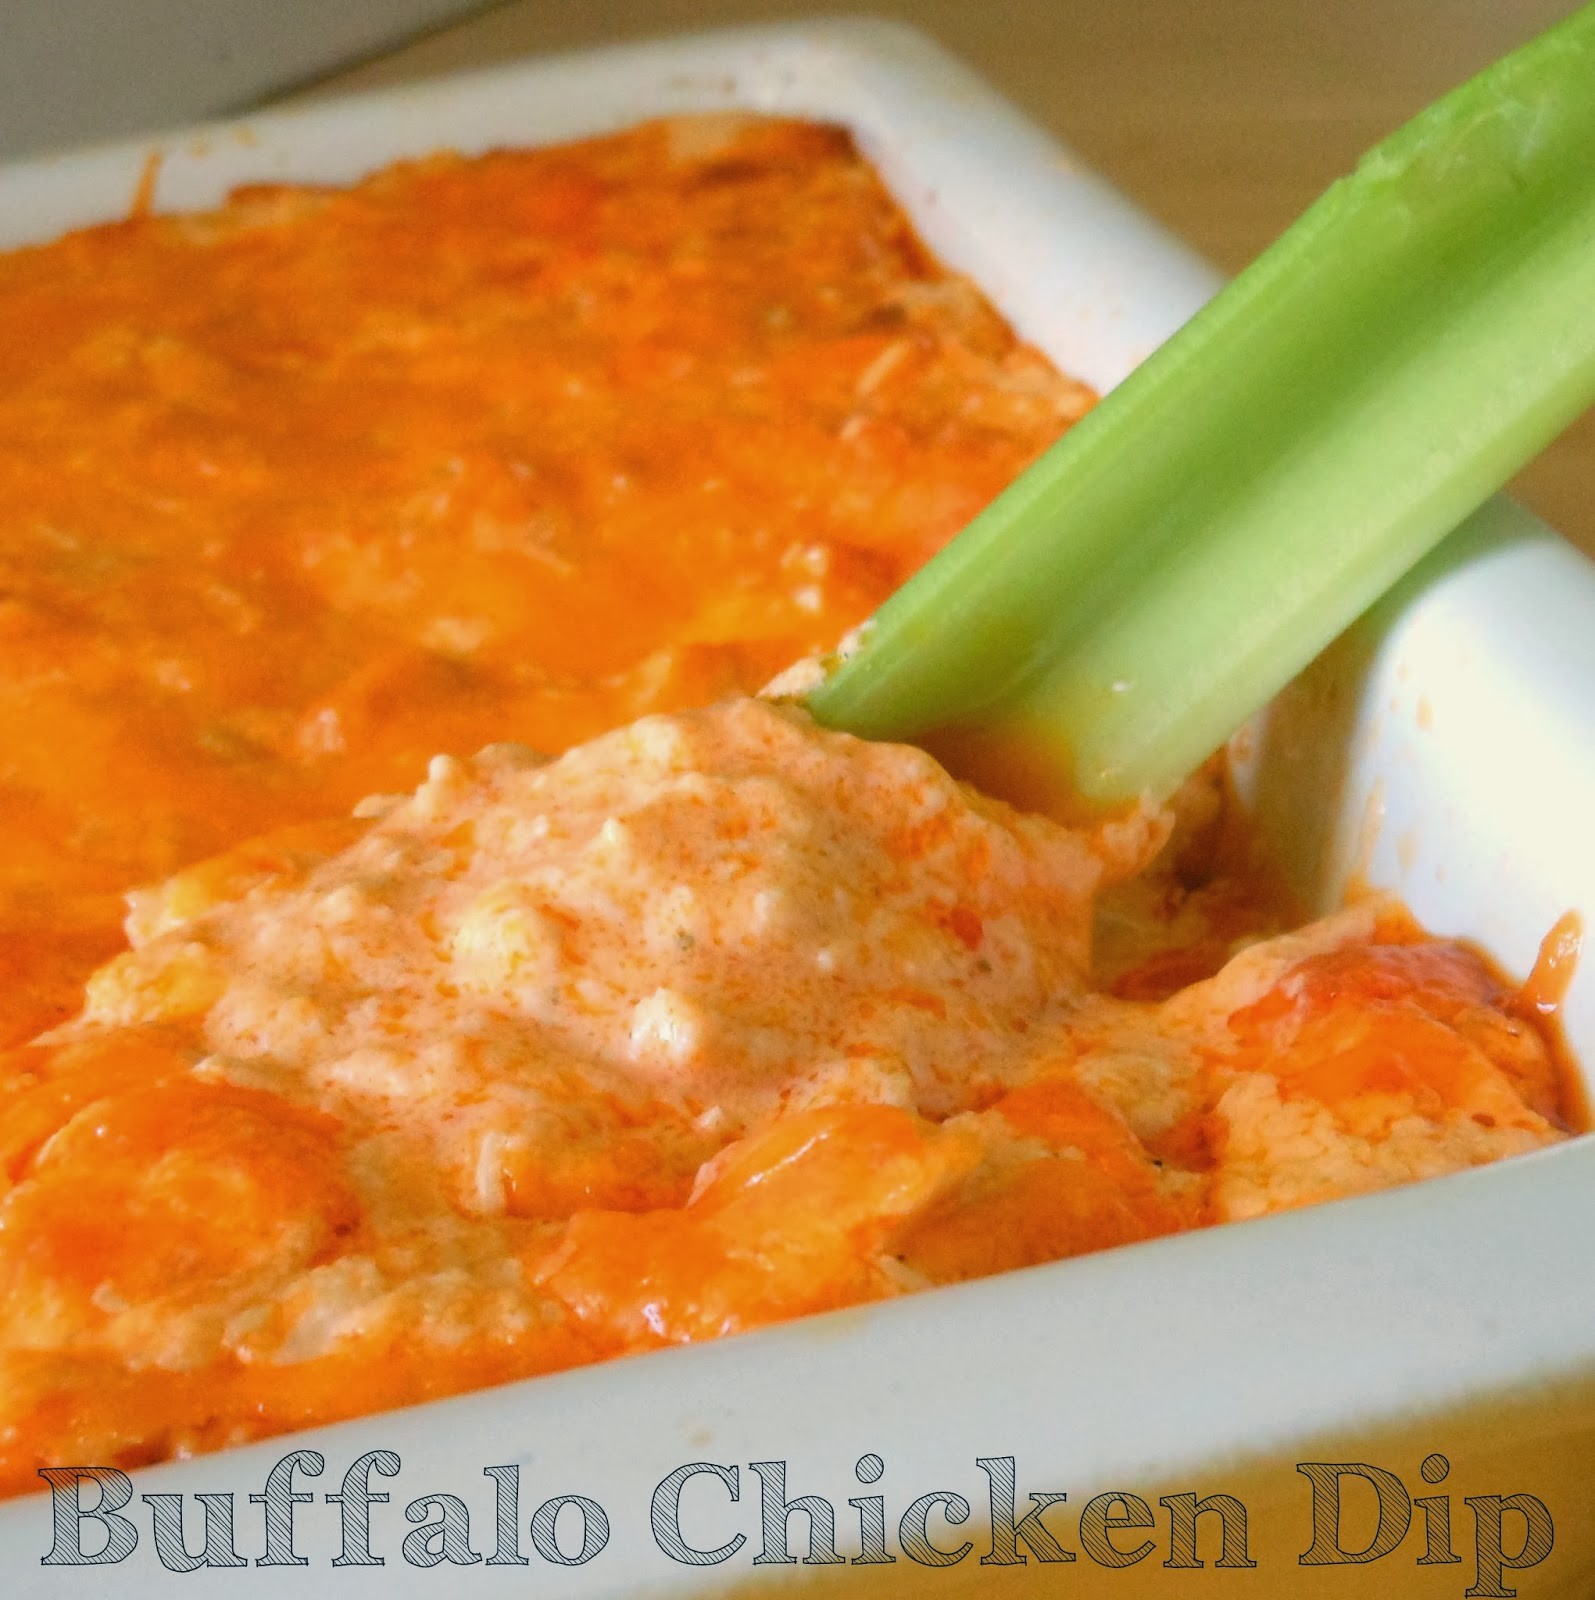 ... in Homemaking: Super Snacks for the Super Bowl: Buffalo Chicken Dip